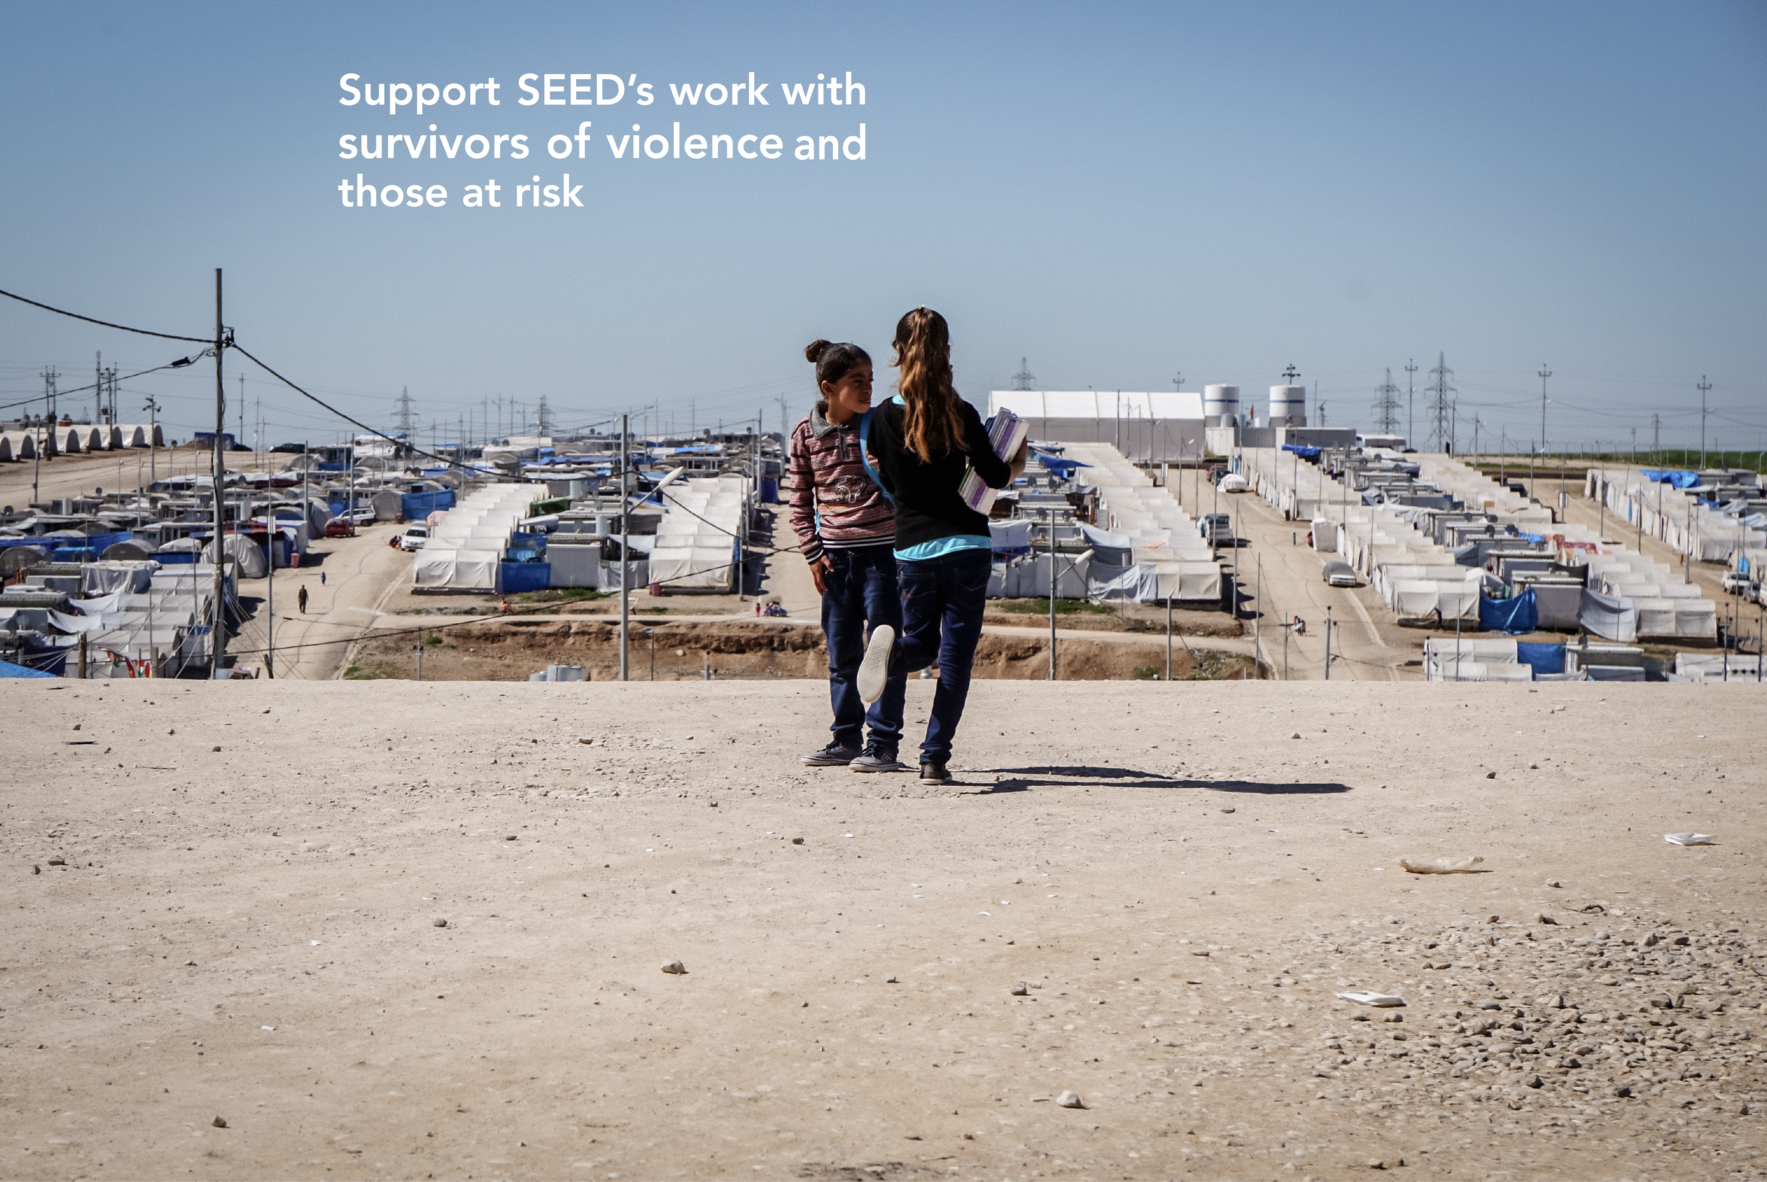 SEED for Change image